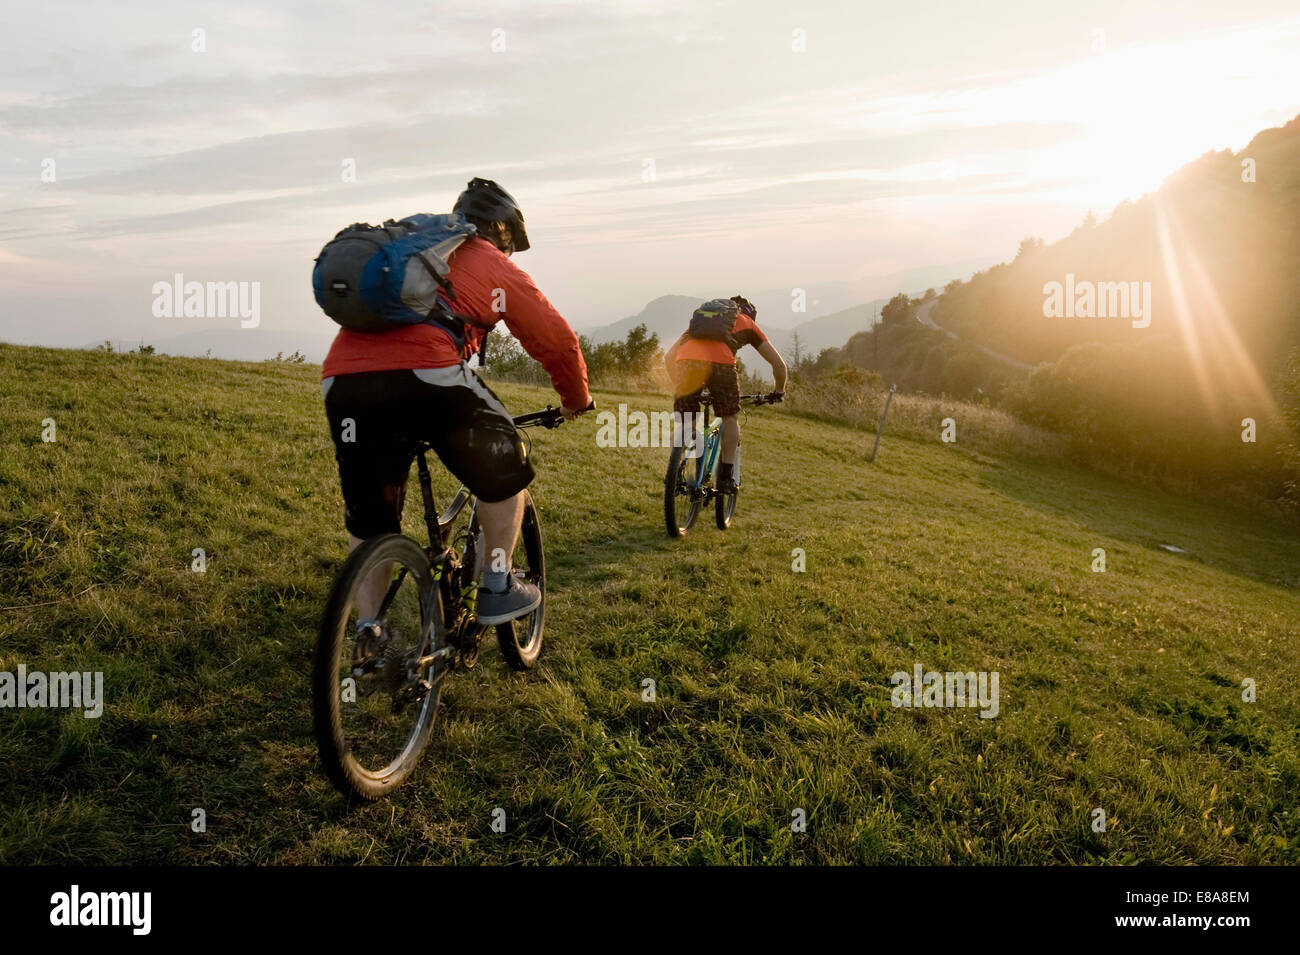 two mountain bikers on the way at sunset, Kolovrat, Istria, Slovenia - Stock Image